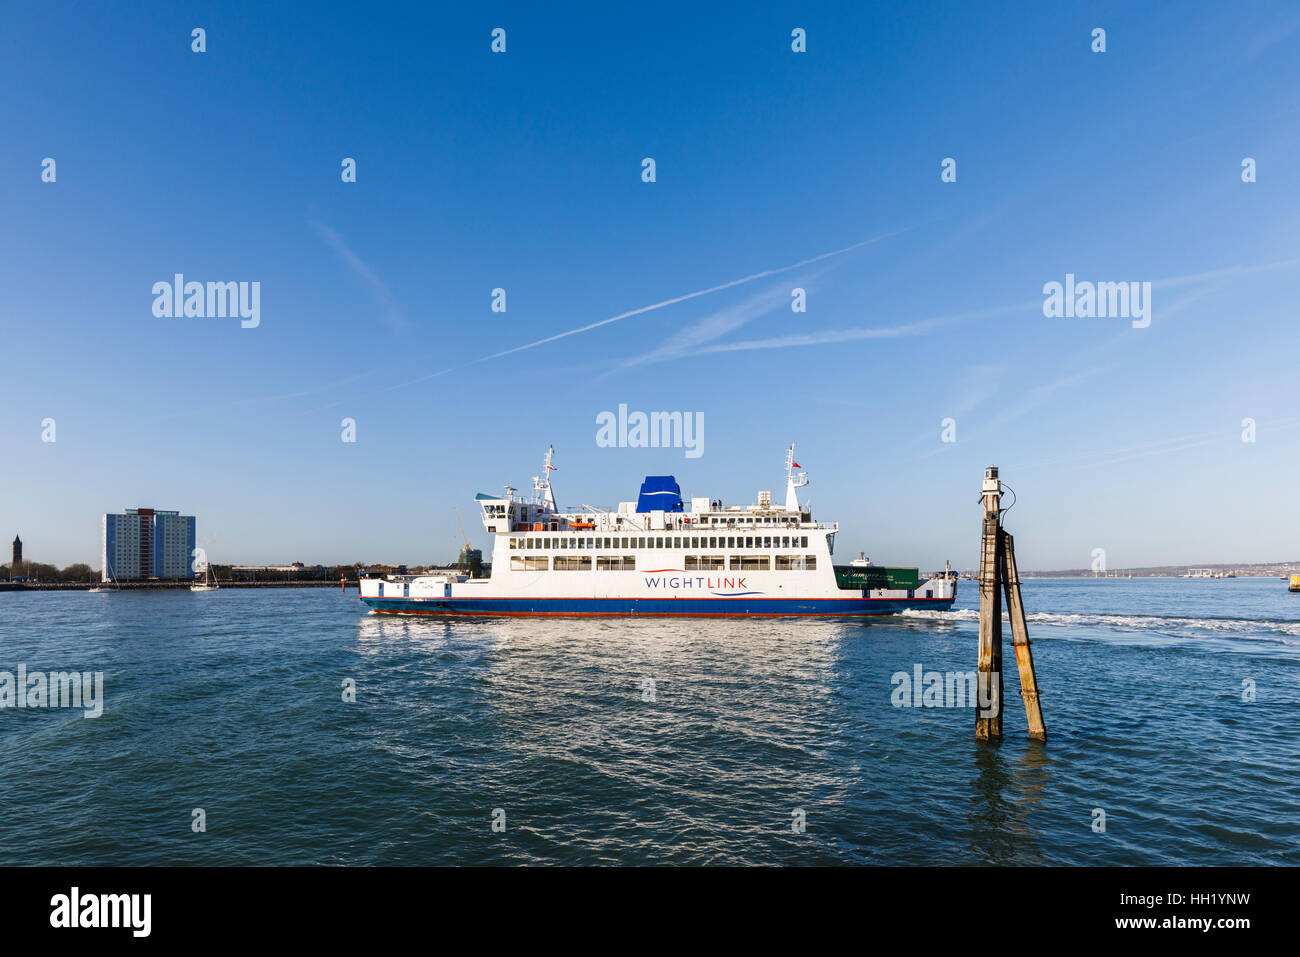 WhiteLink ferry underway from Portsmouth Harbour, Portsmouth, Hampshire, southern England on a sunny winter day - Stock Image